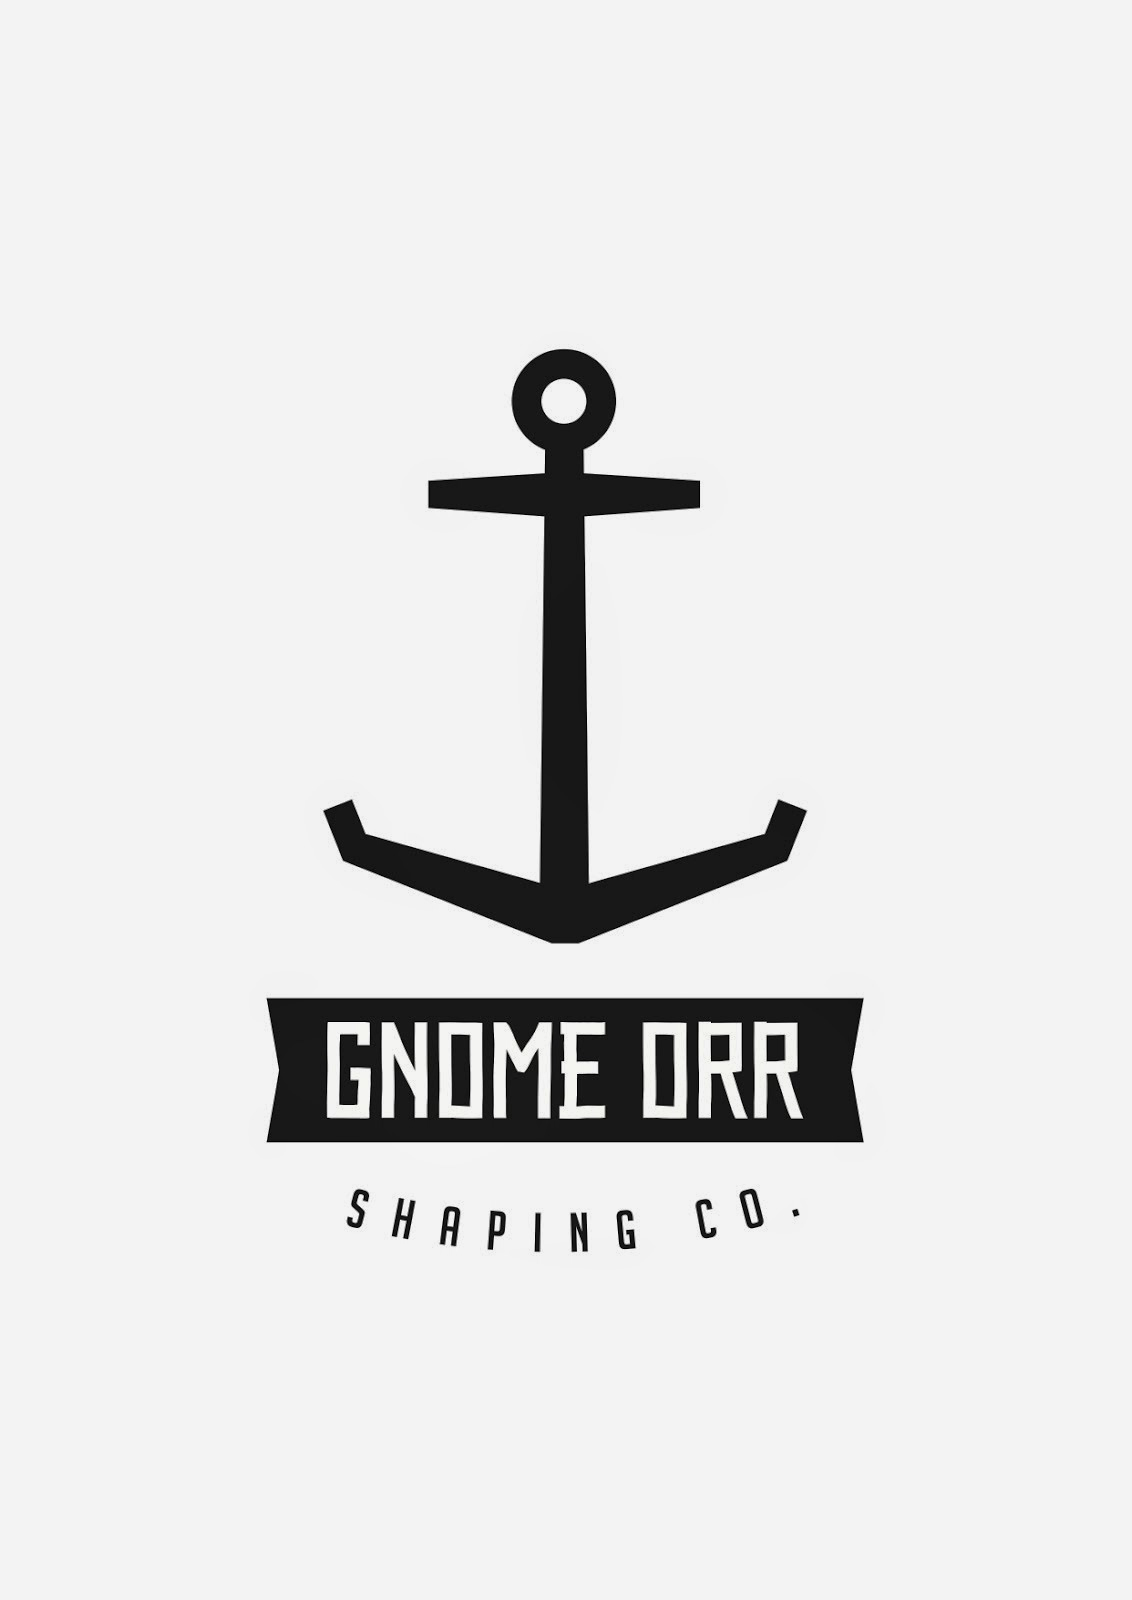 Gnome Orr Shaping Co